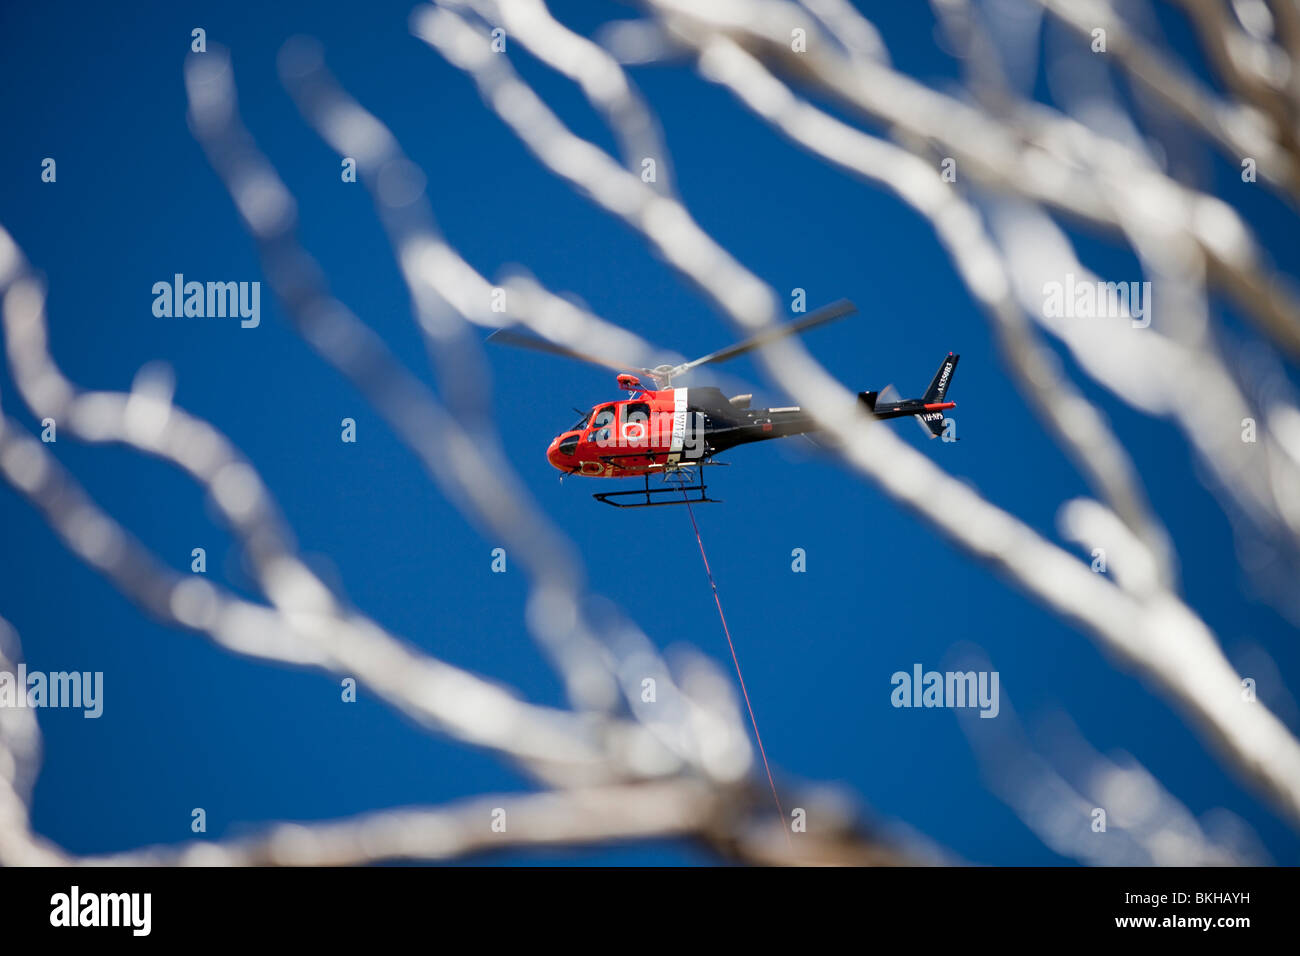 National Park staff using a helicopter to move goods in the Snowy mountains, Australia. - Stock Image